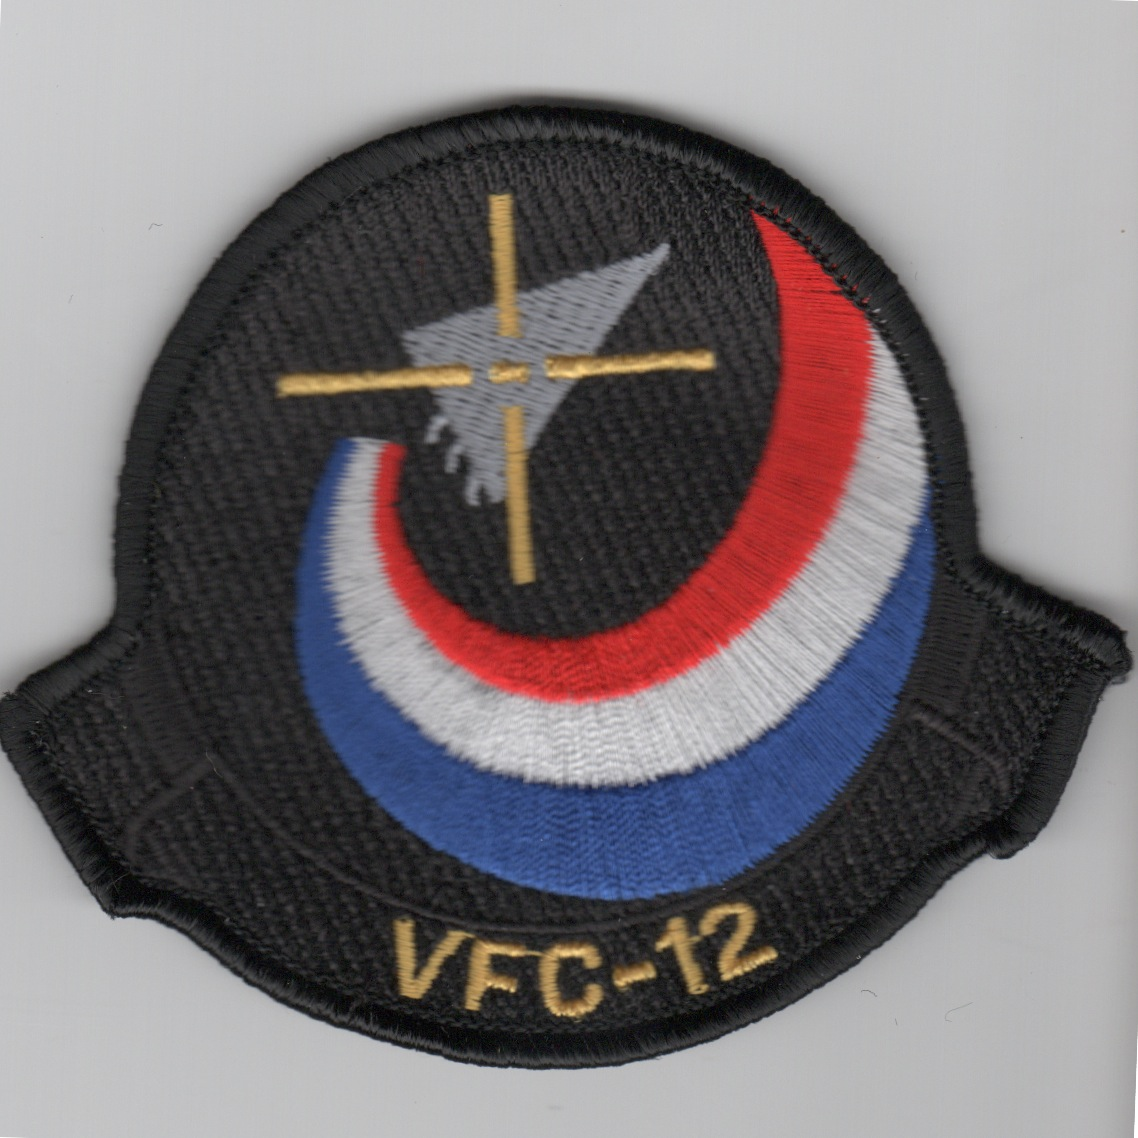 VFC-12 Adversary Squadron Patch (Black)